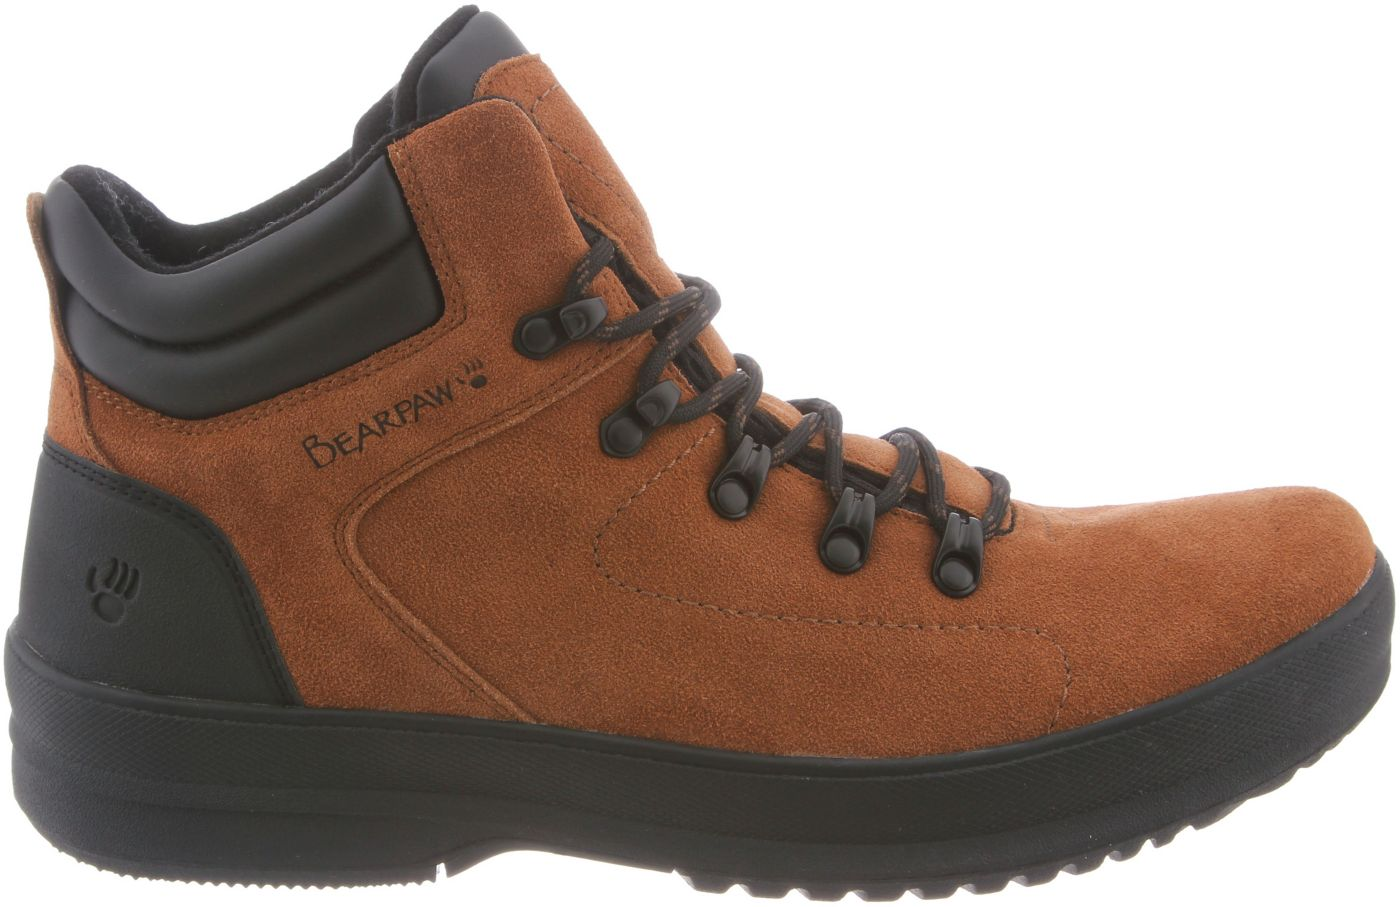 BEARPAW Men's Dominic II Waterproof Winter Boots